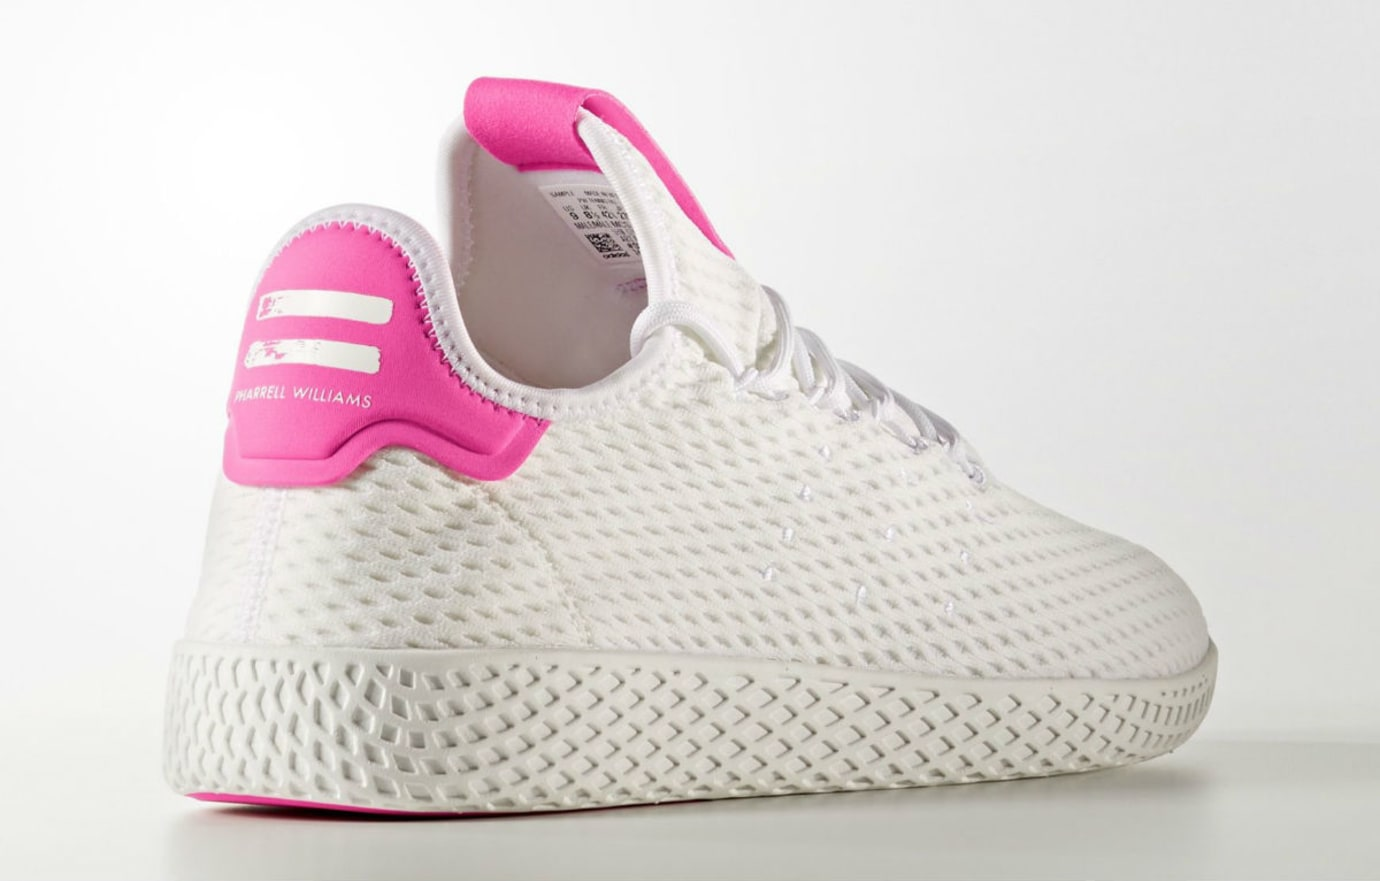 reputable site f4d23 5a0a3 Pharrell x Adidas Tennis Hu Pink Release Date Lateral